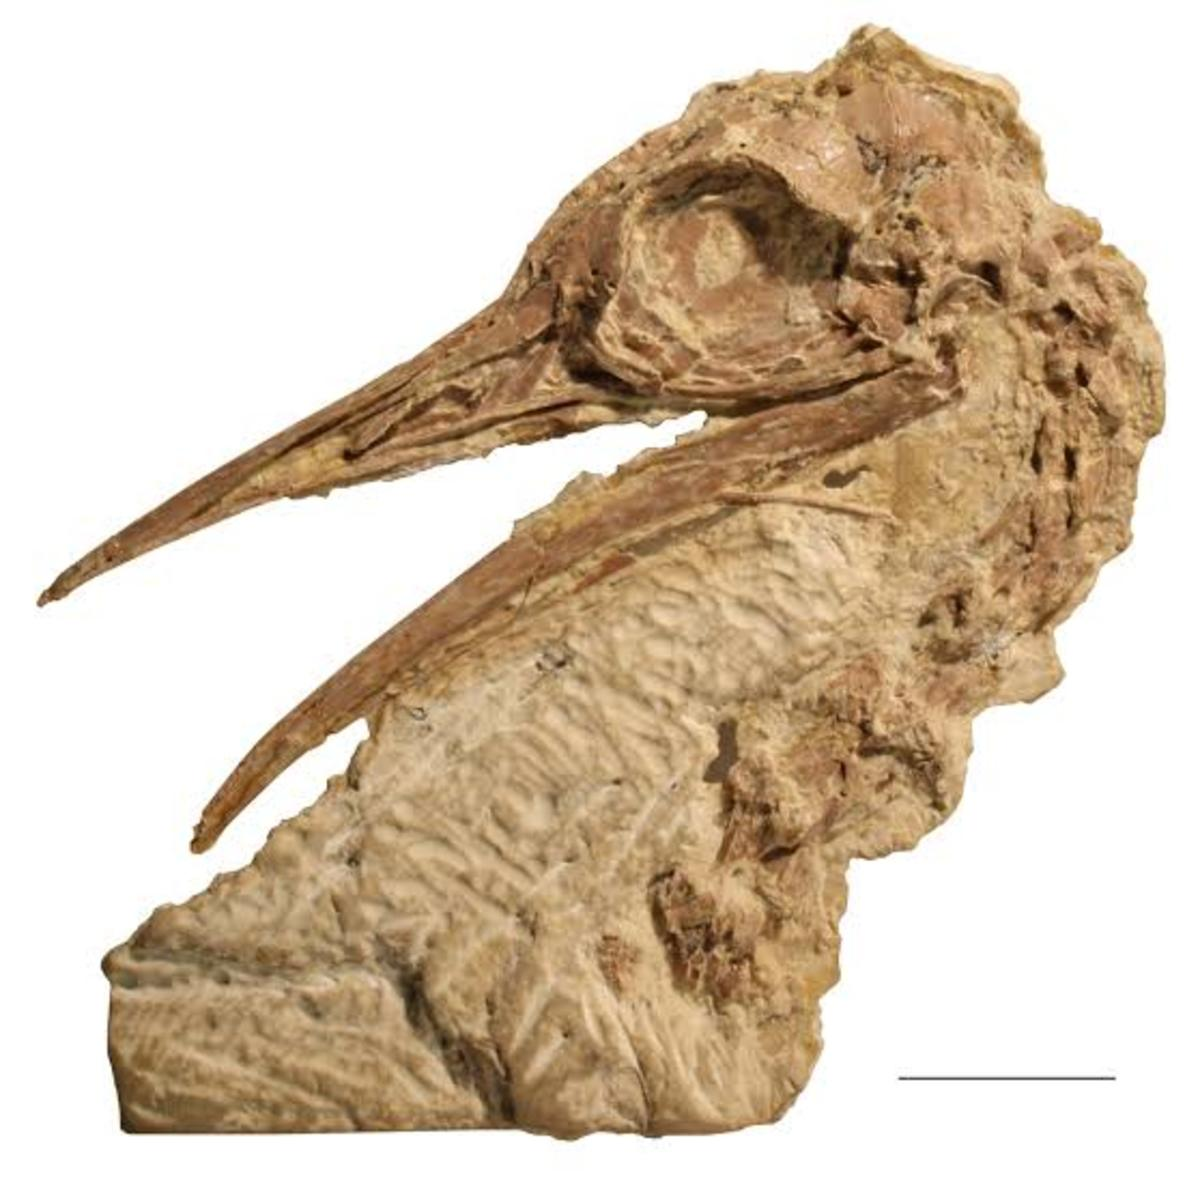 Photo of fossils found in North America that was used to proof that Ostriches once inhabited the region.